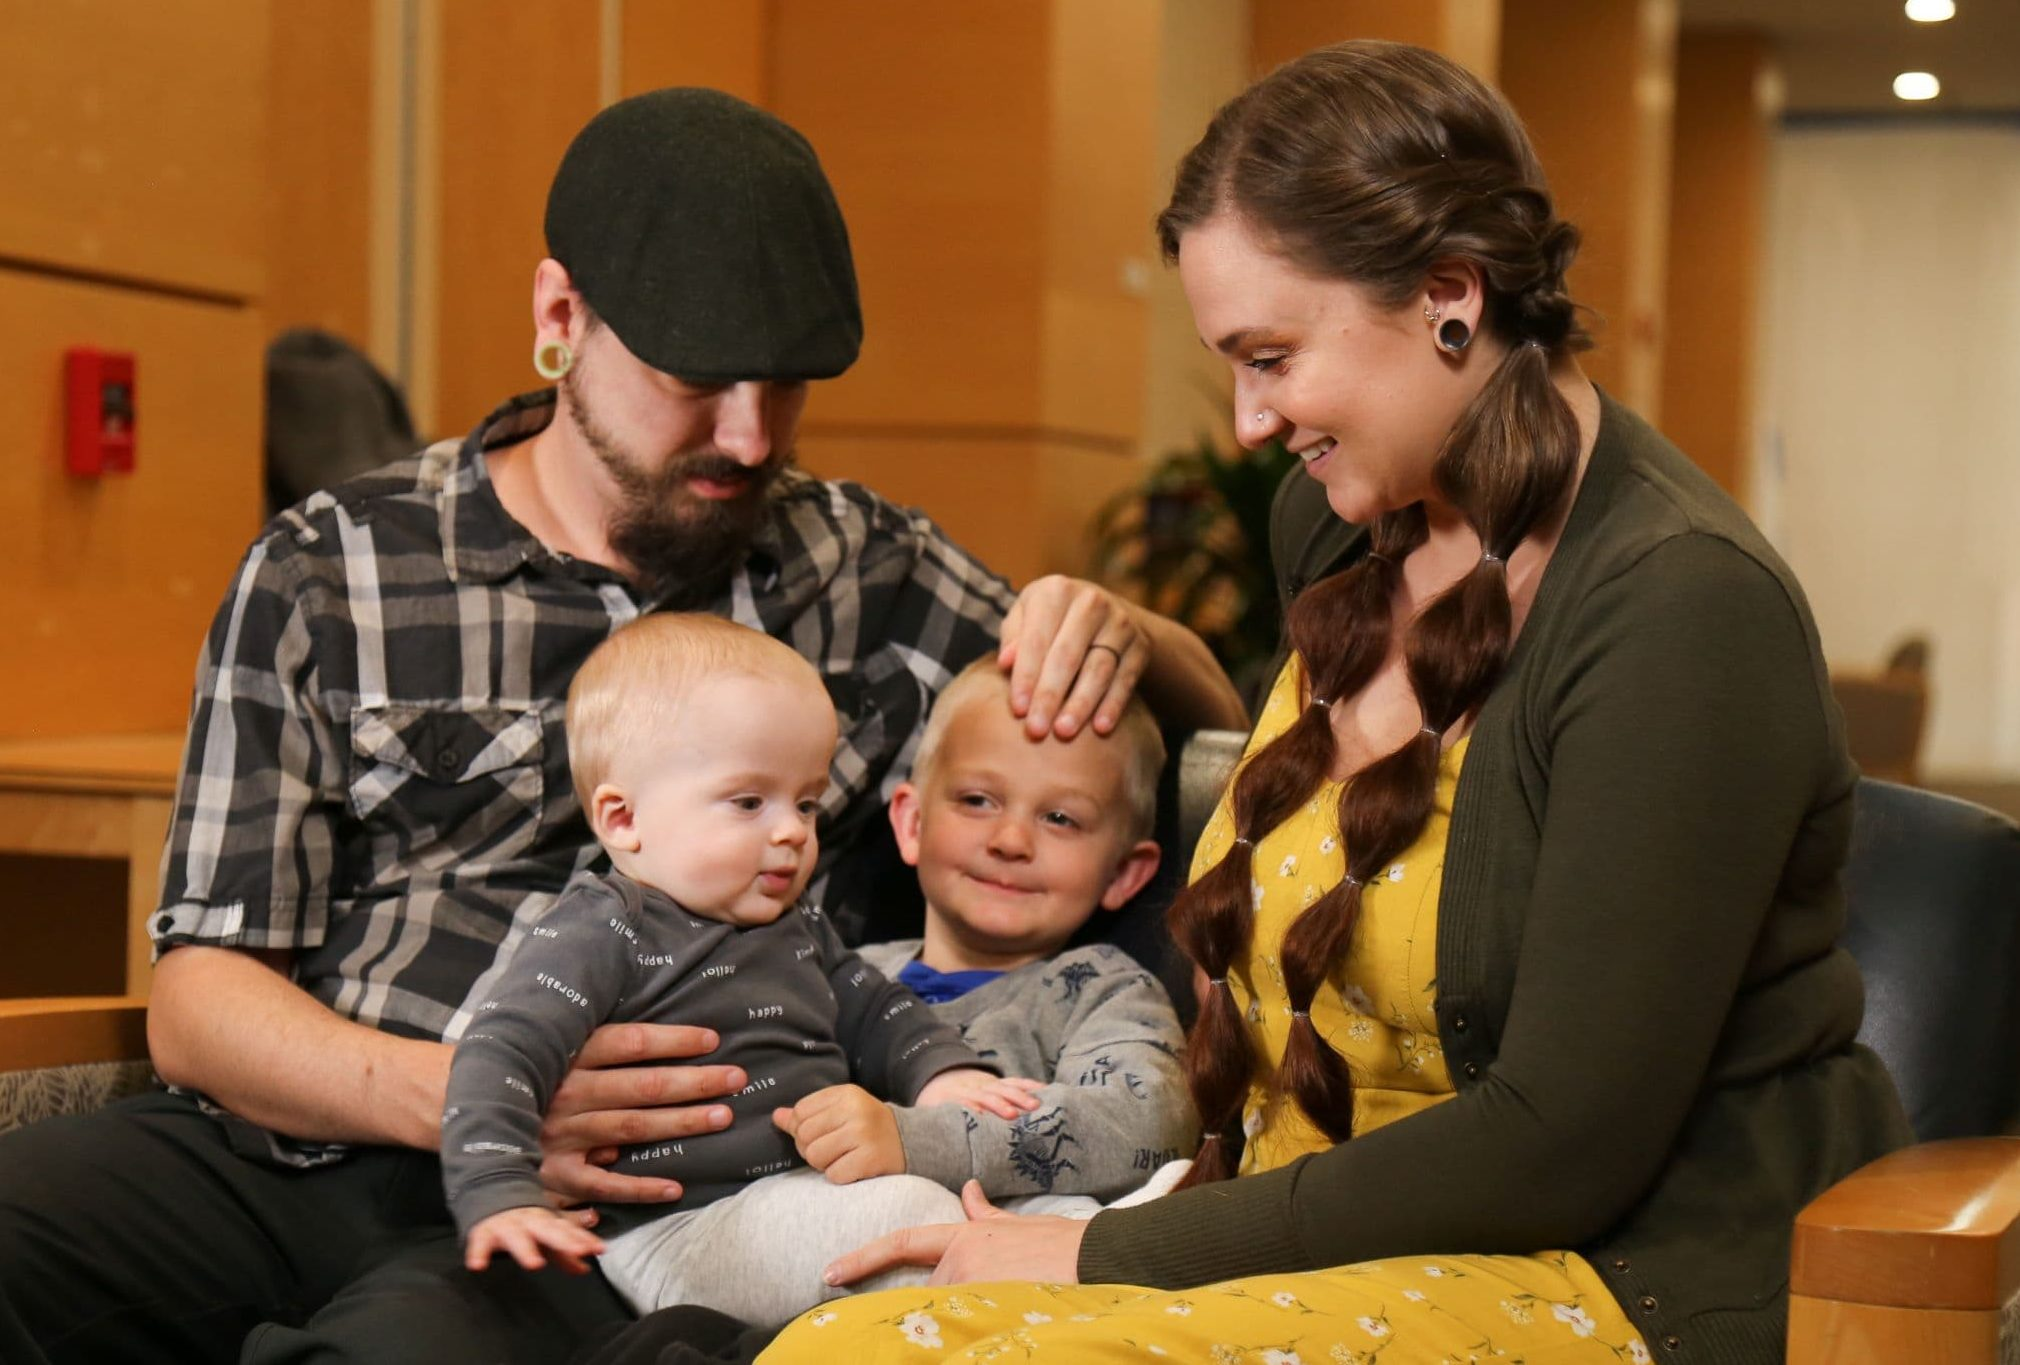 Darrell and Elaine Hurst with their two sons, Oliver (left) and Paxton. Oliver was born last year with Spinal Muscular Atrophy, a disease that could have killed him if not for a newborn screening implemented by UAMS' Kapil Arya, M.D., and a new treatment.